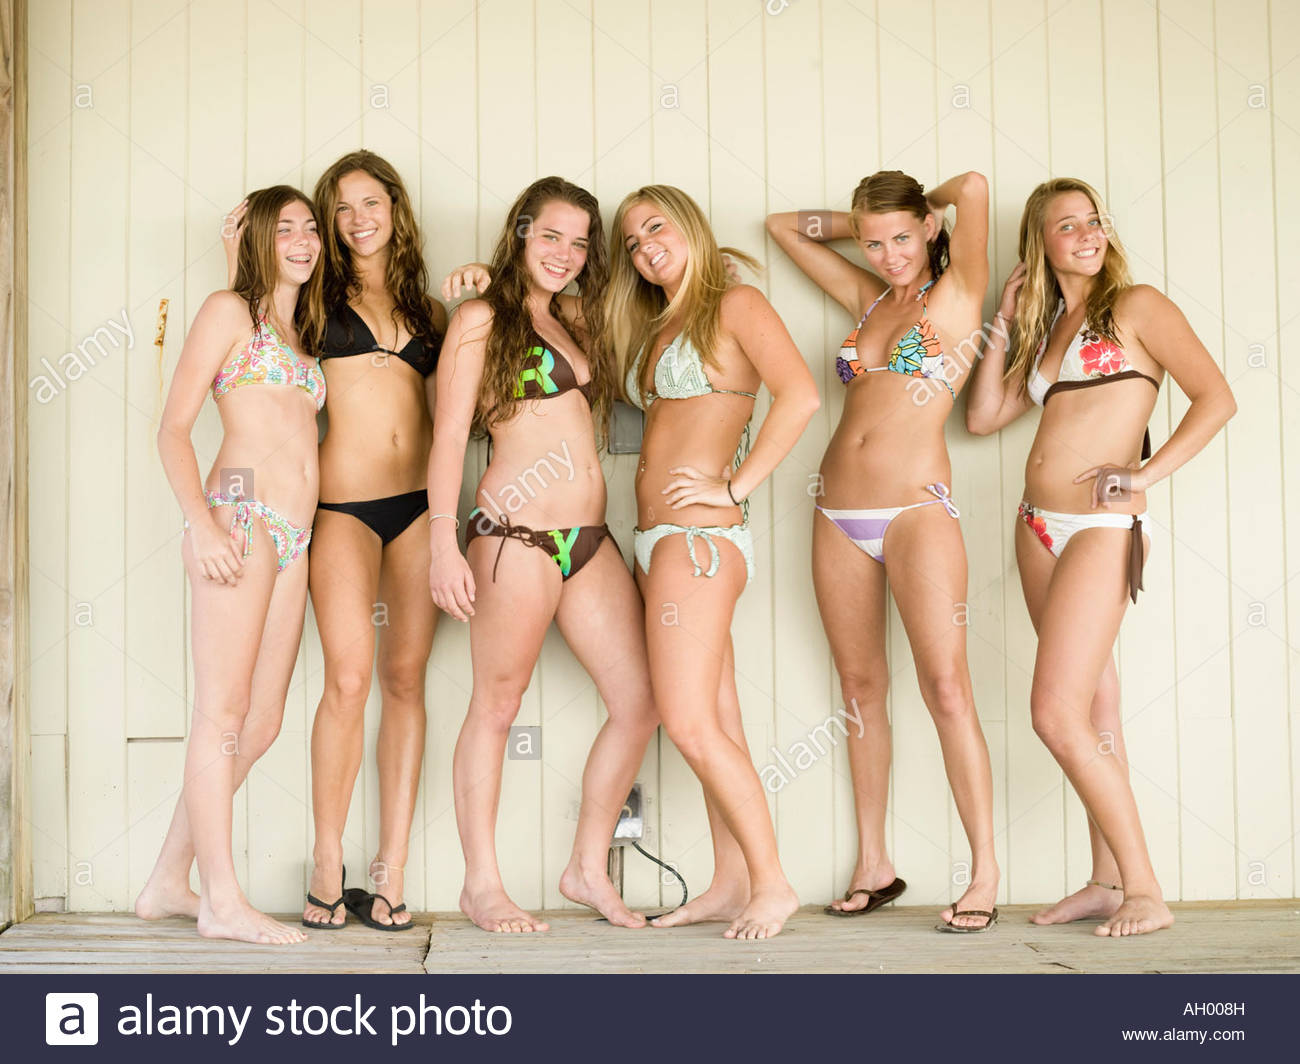 Teenage girls wearing bikinis